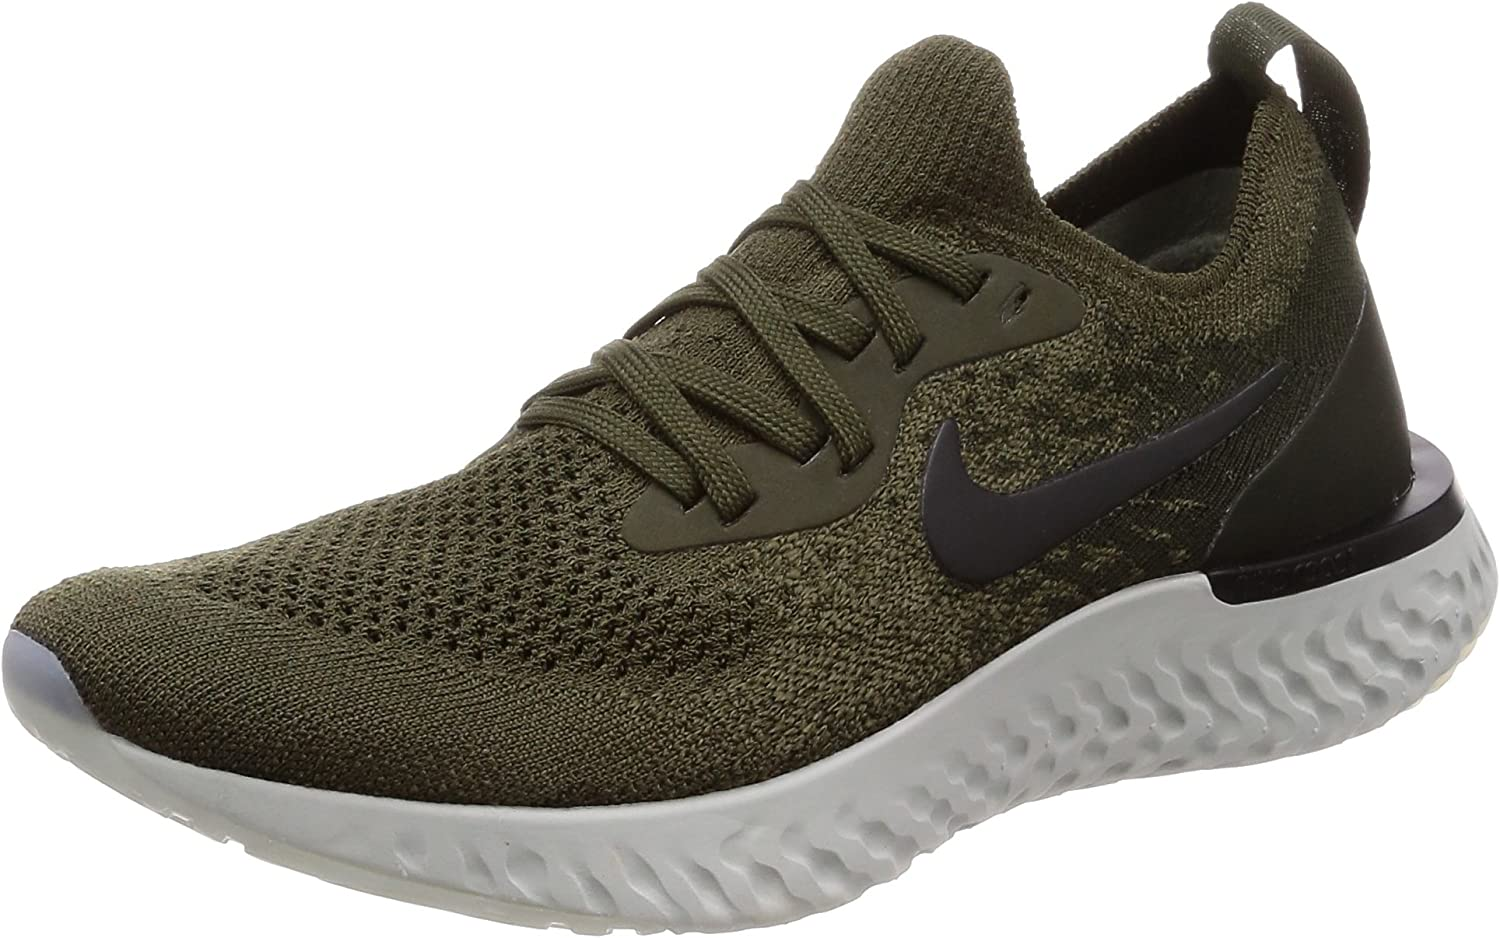 Nike WMNS Epic React Flyknit Womens Aq0070-300